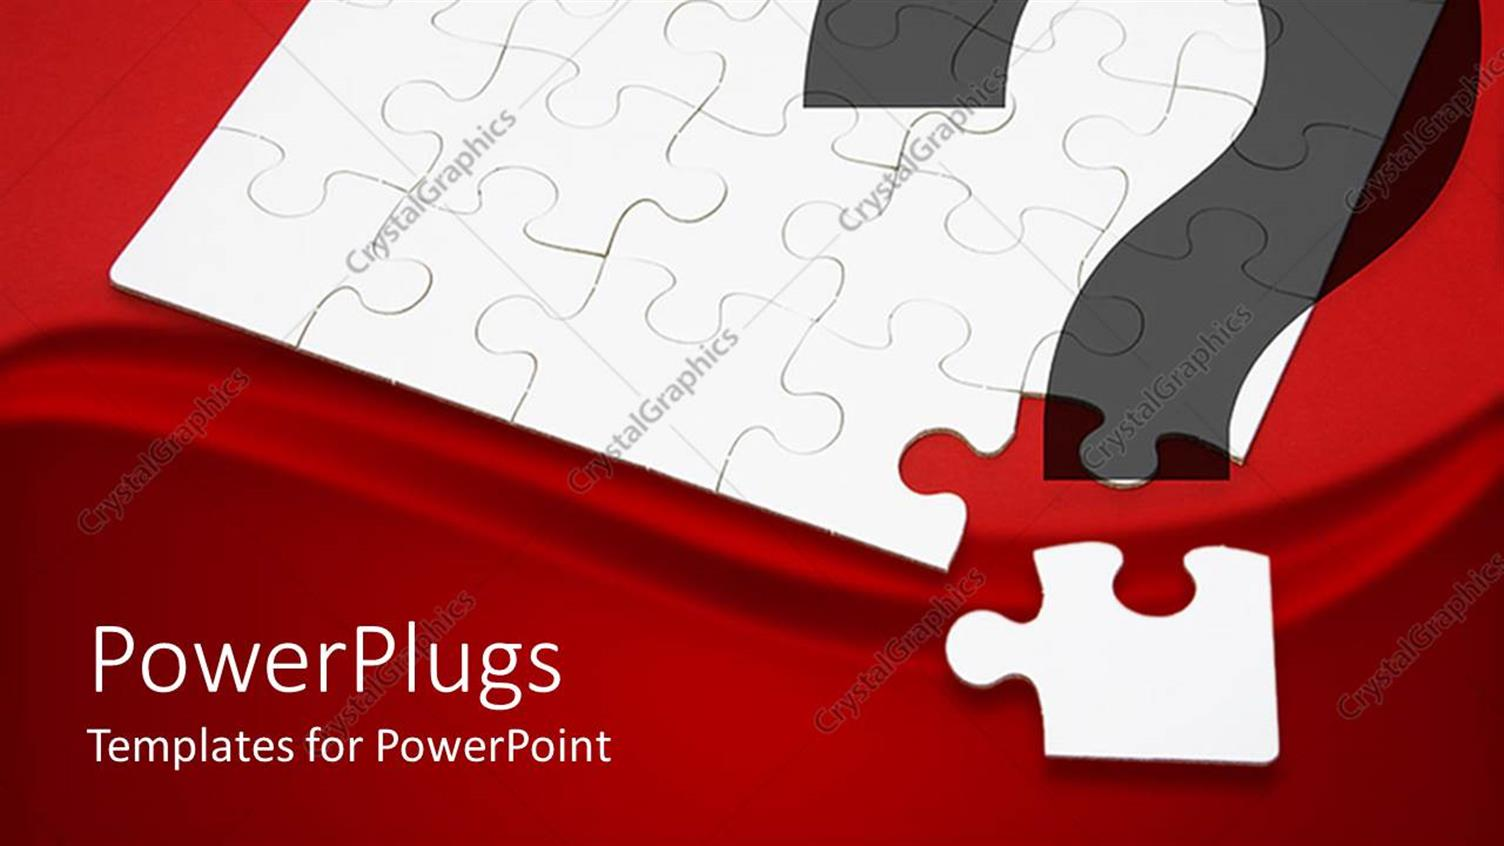 PowerPoint Template Displaying White Jigsaw Puzzle Next to Corner Puzzle Piece in Red Background